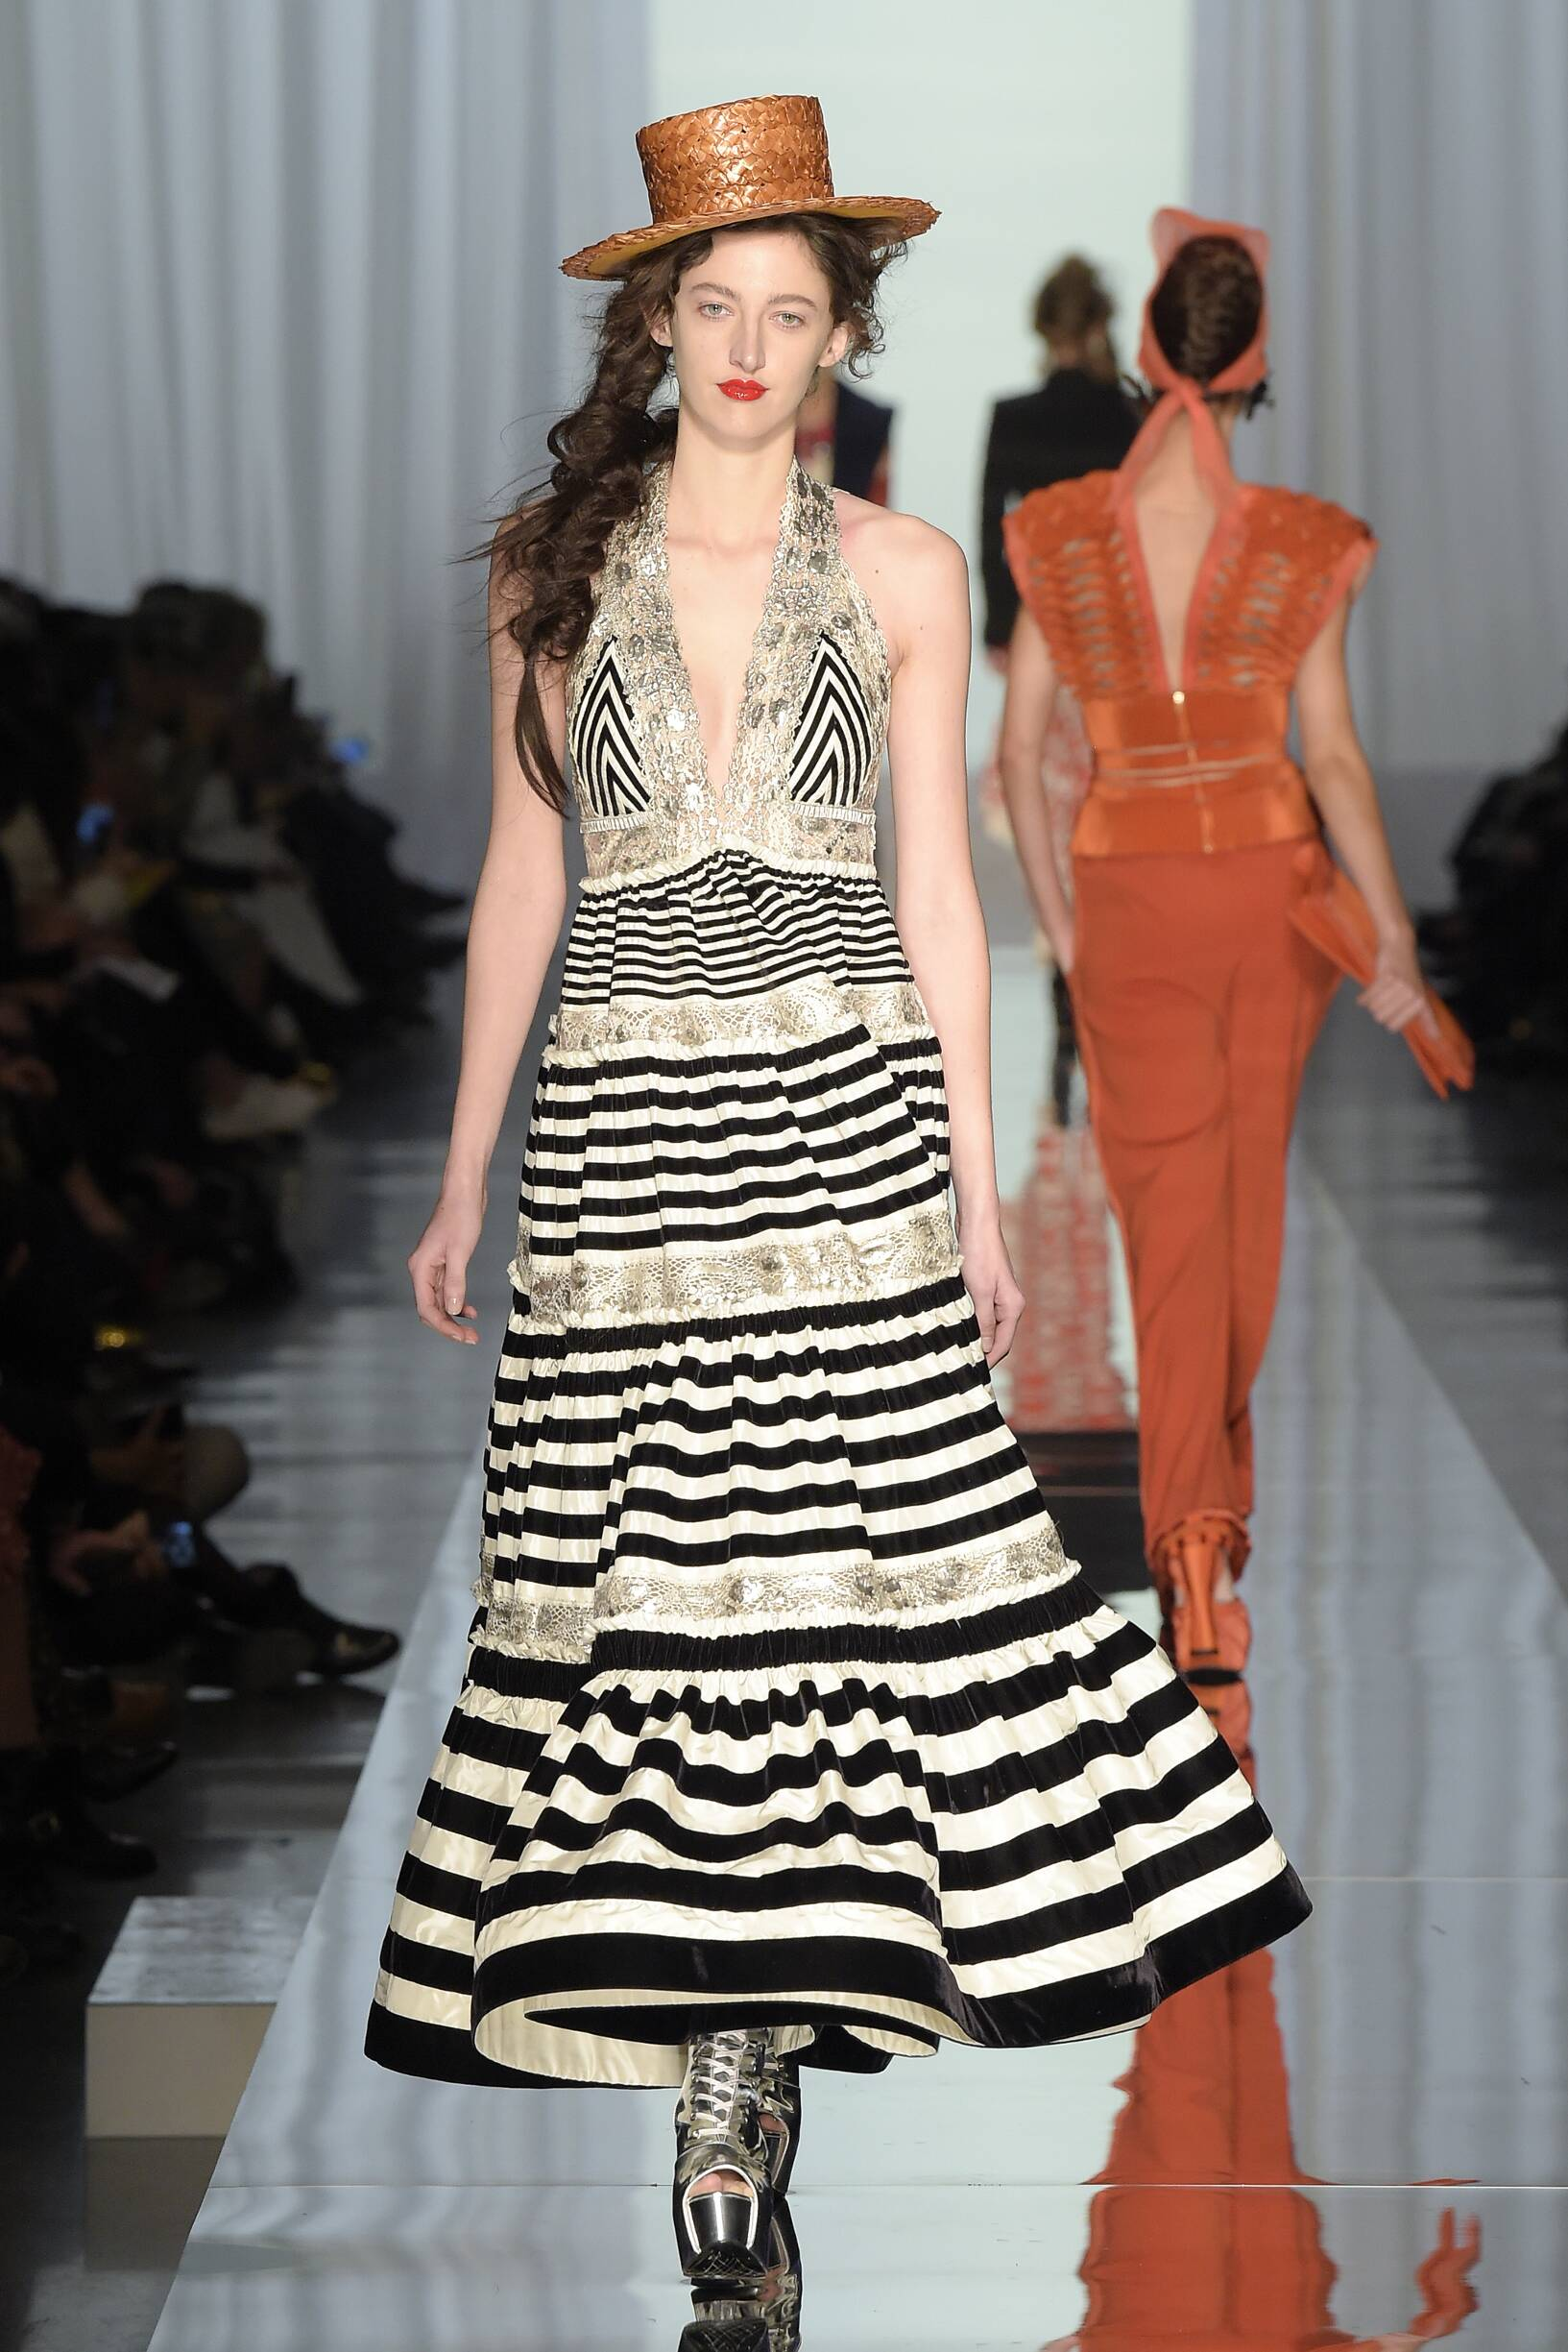 Jean Paul Gaultier Haute Couture Woman Spring 2018 Catwalk